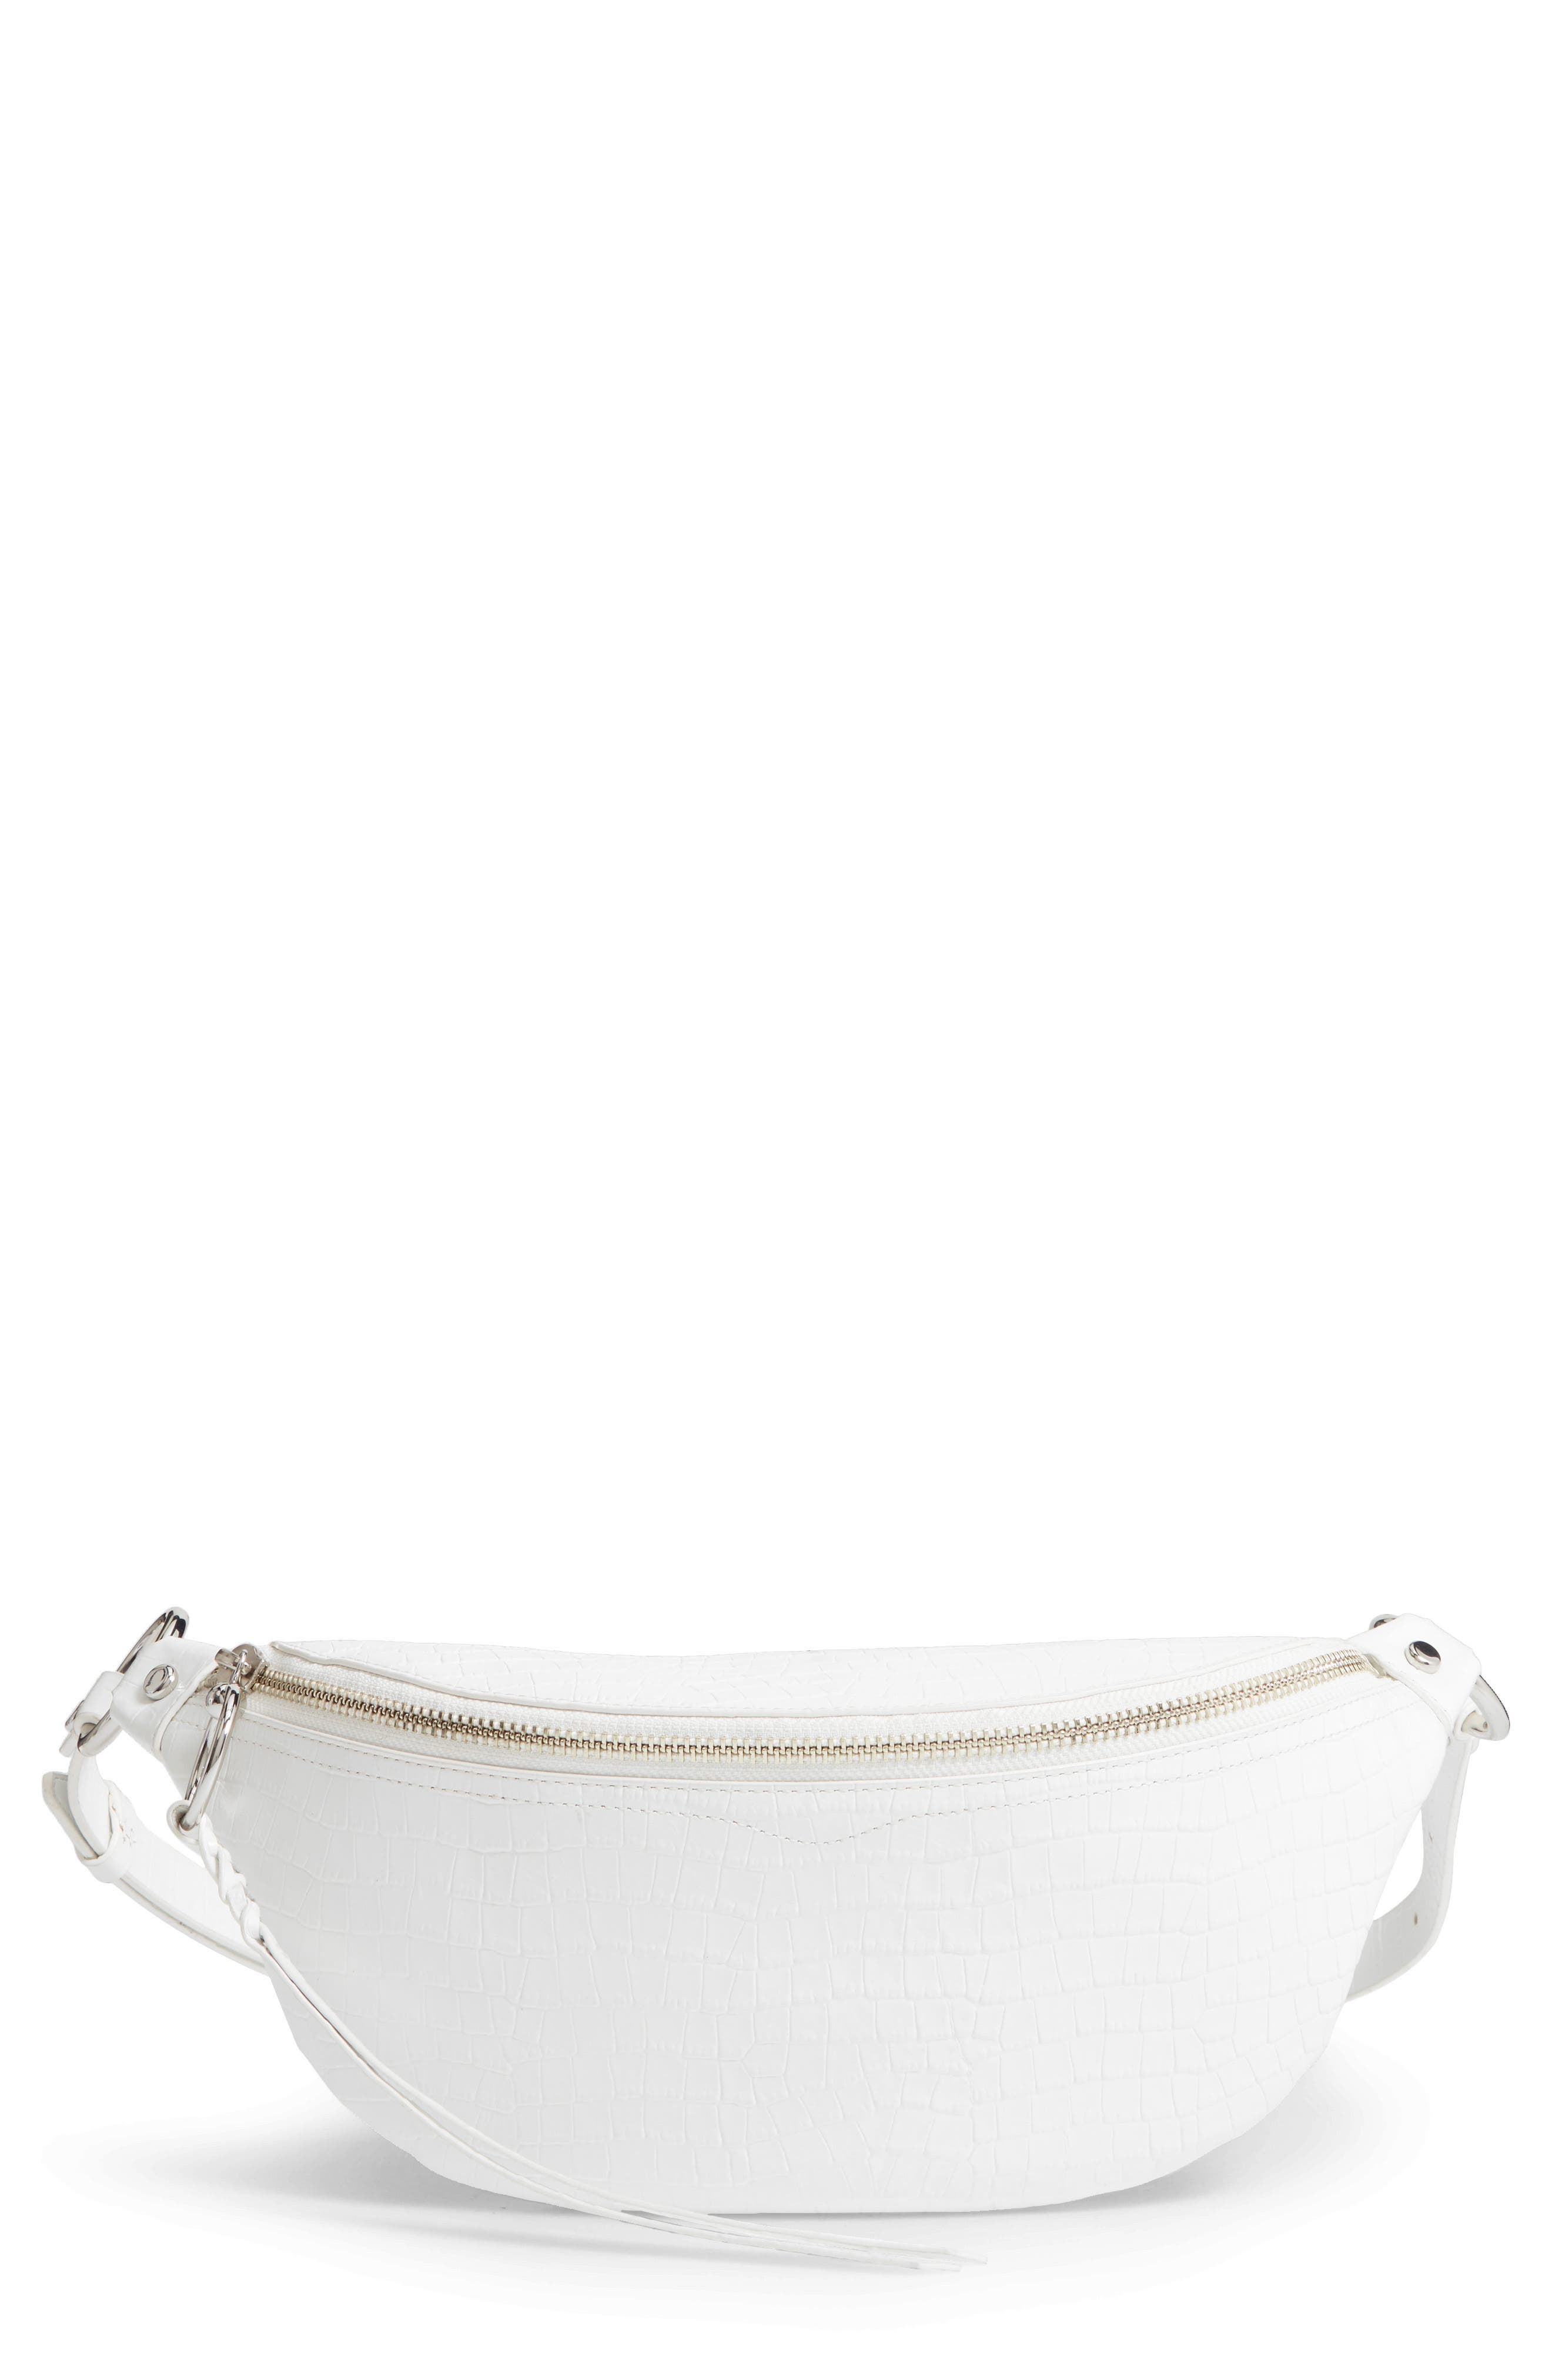 REBECCA MINKOFF Bree Croc Embossed Leather Belt Bag, Main, color, OPTIC WHITE